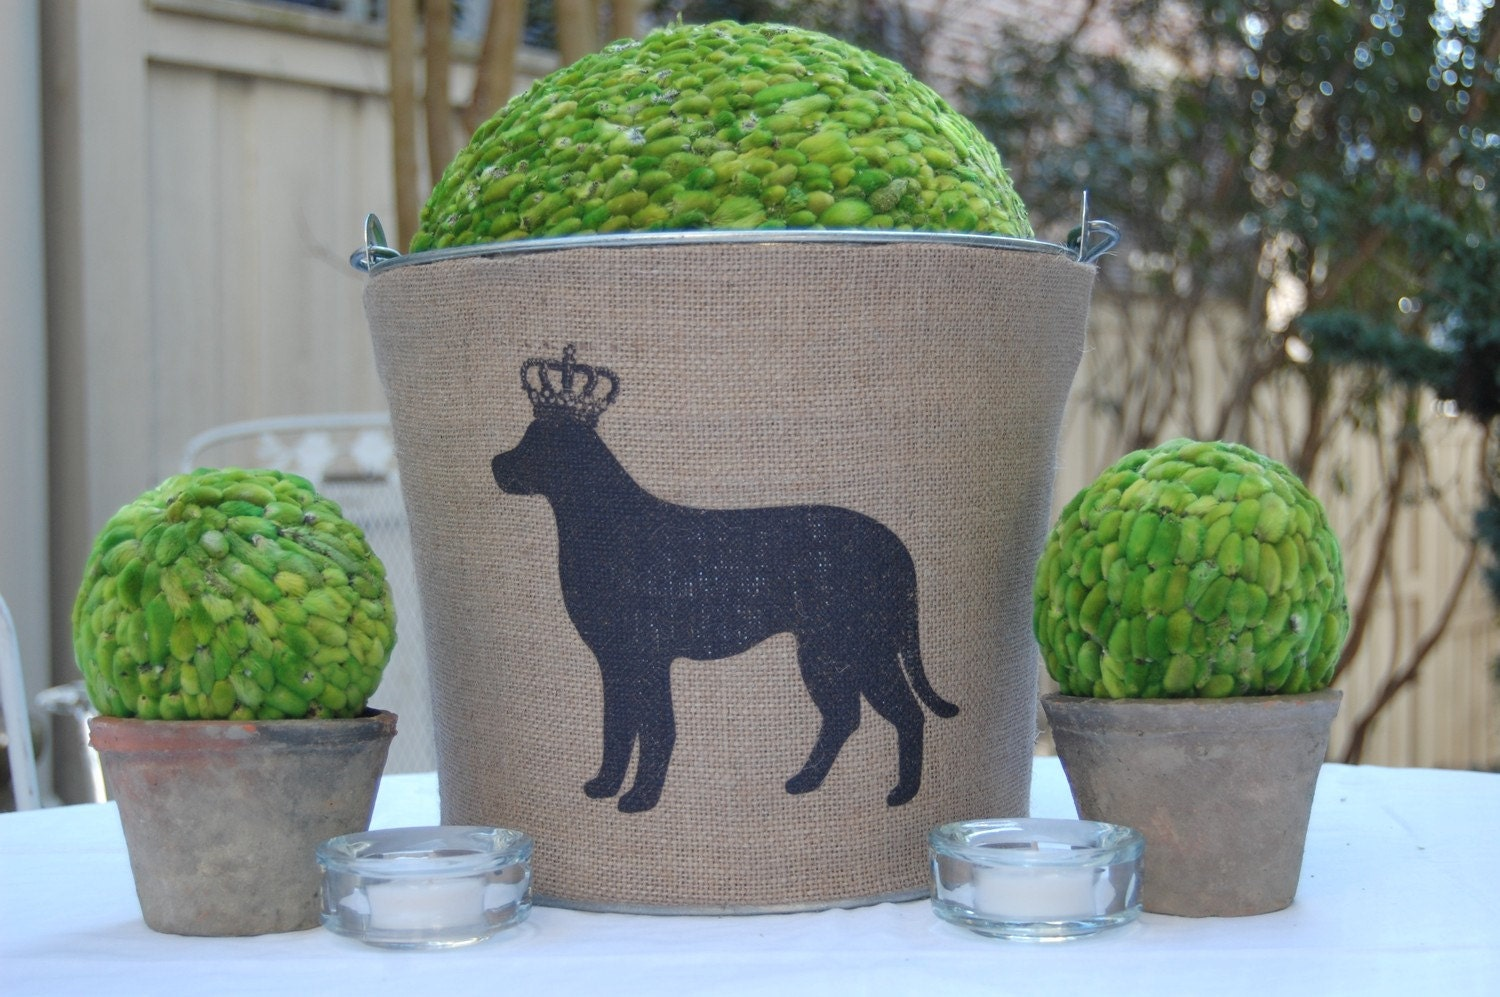 Custom Burlap Covered Galvanized Bucket Pail with Black Lab......OR monogram for wedding OR home....Unique hostess or birthday gift.